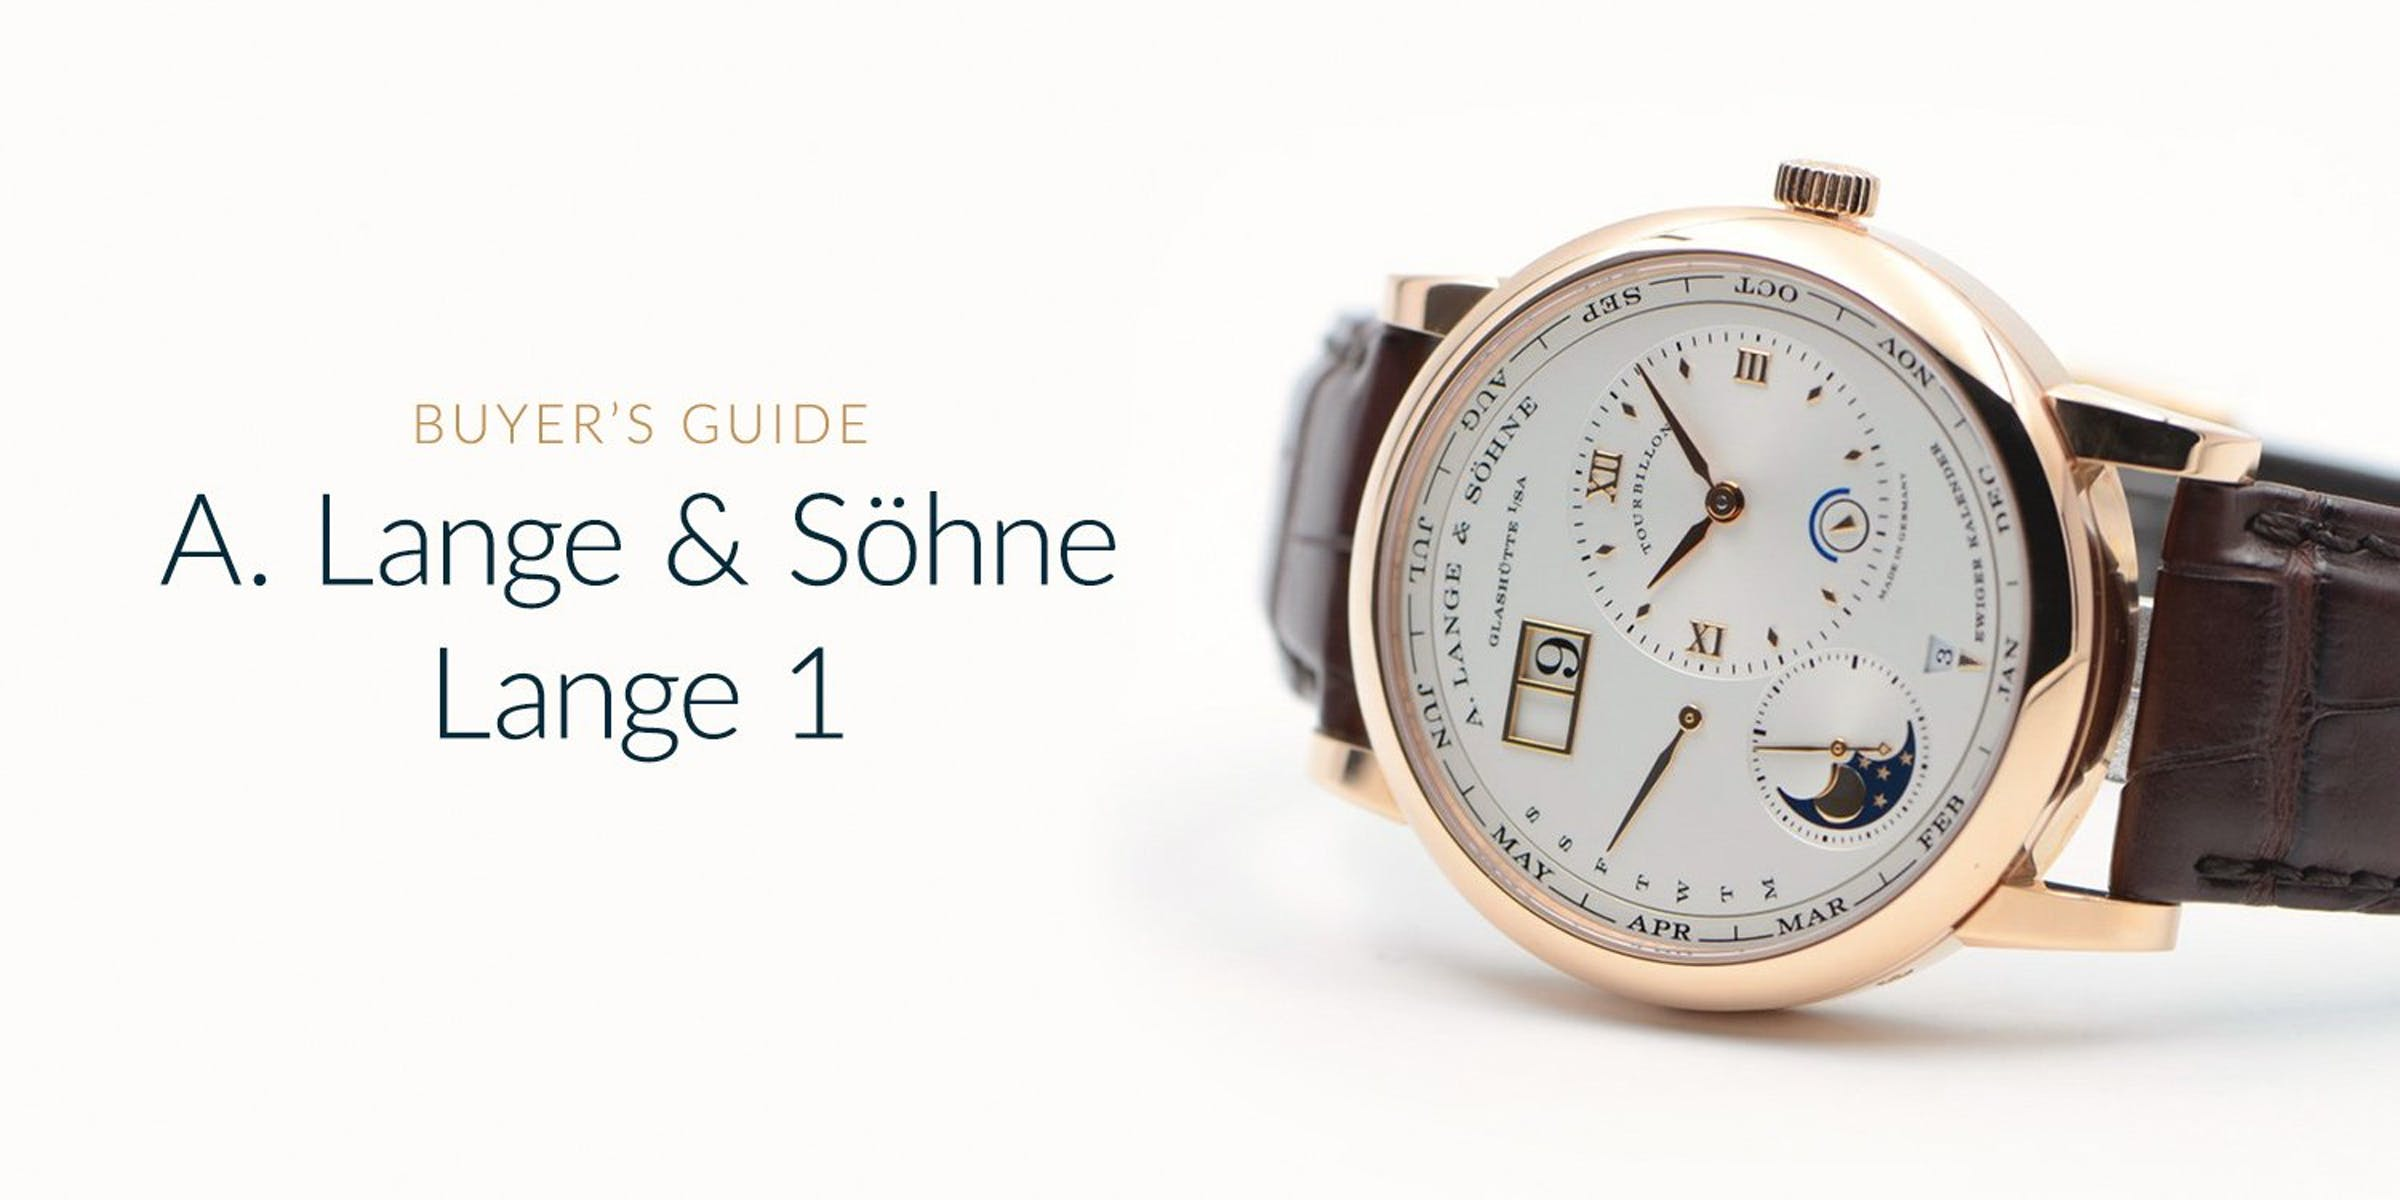 CAM-1413-Buyers-Guide-Lange-2-1-EN